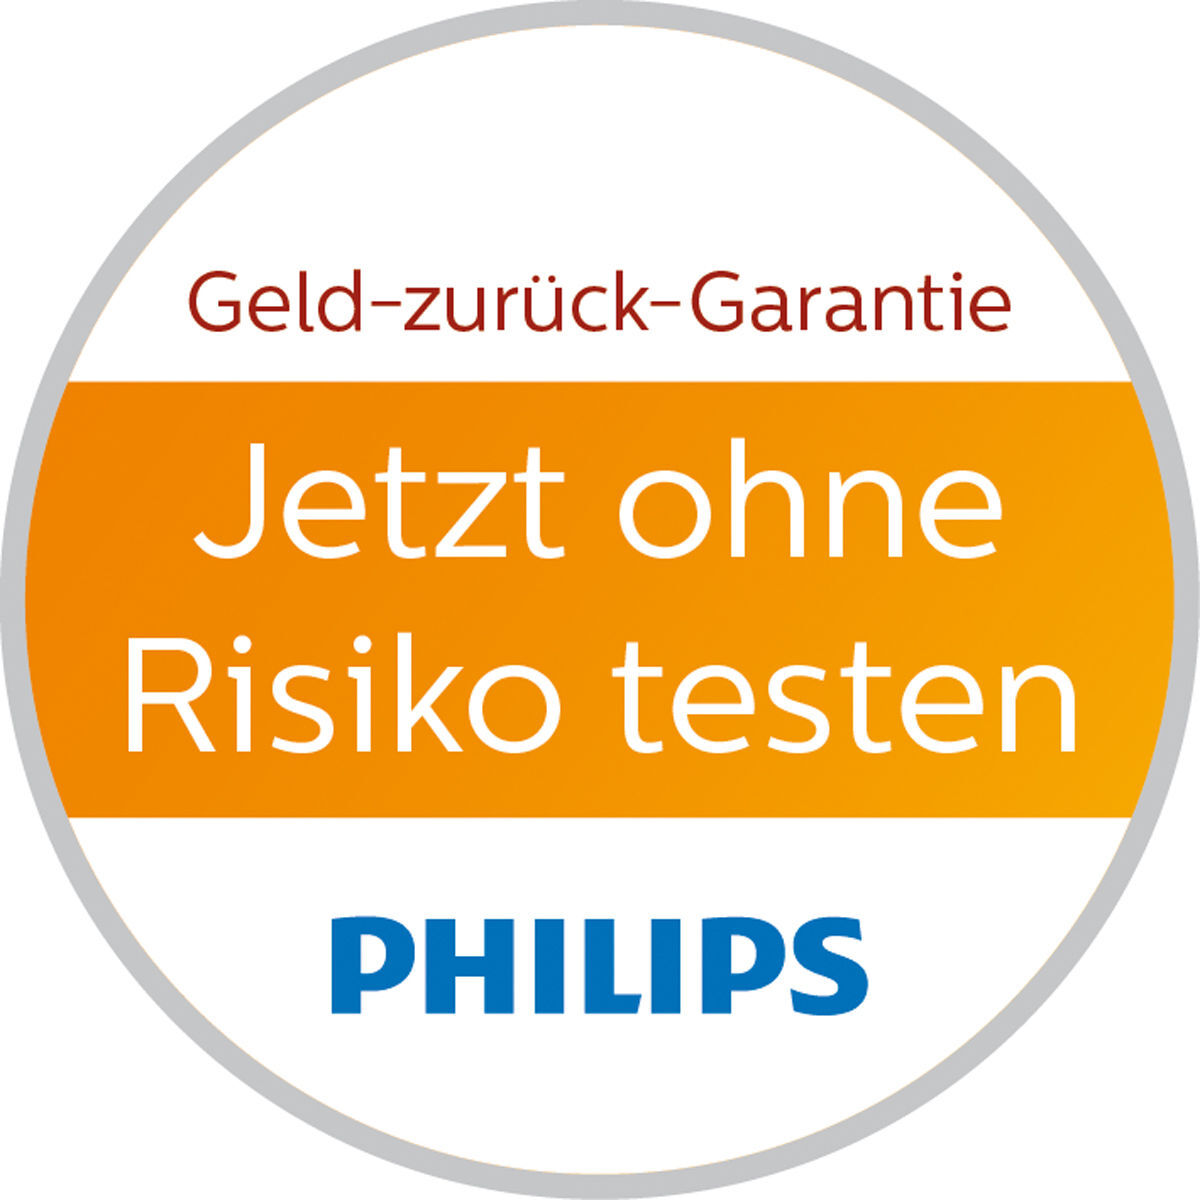 philips radiowecker wake up light hf3510 01 karstadt online shop. Black Bedroom Furniture Sets. Home Design Ideas